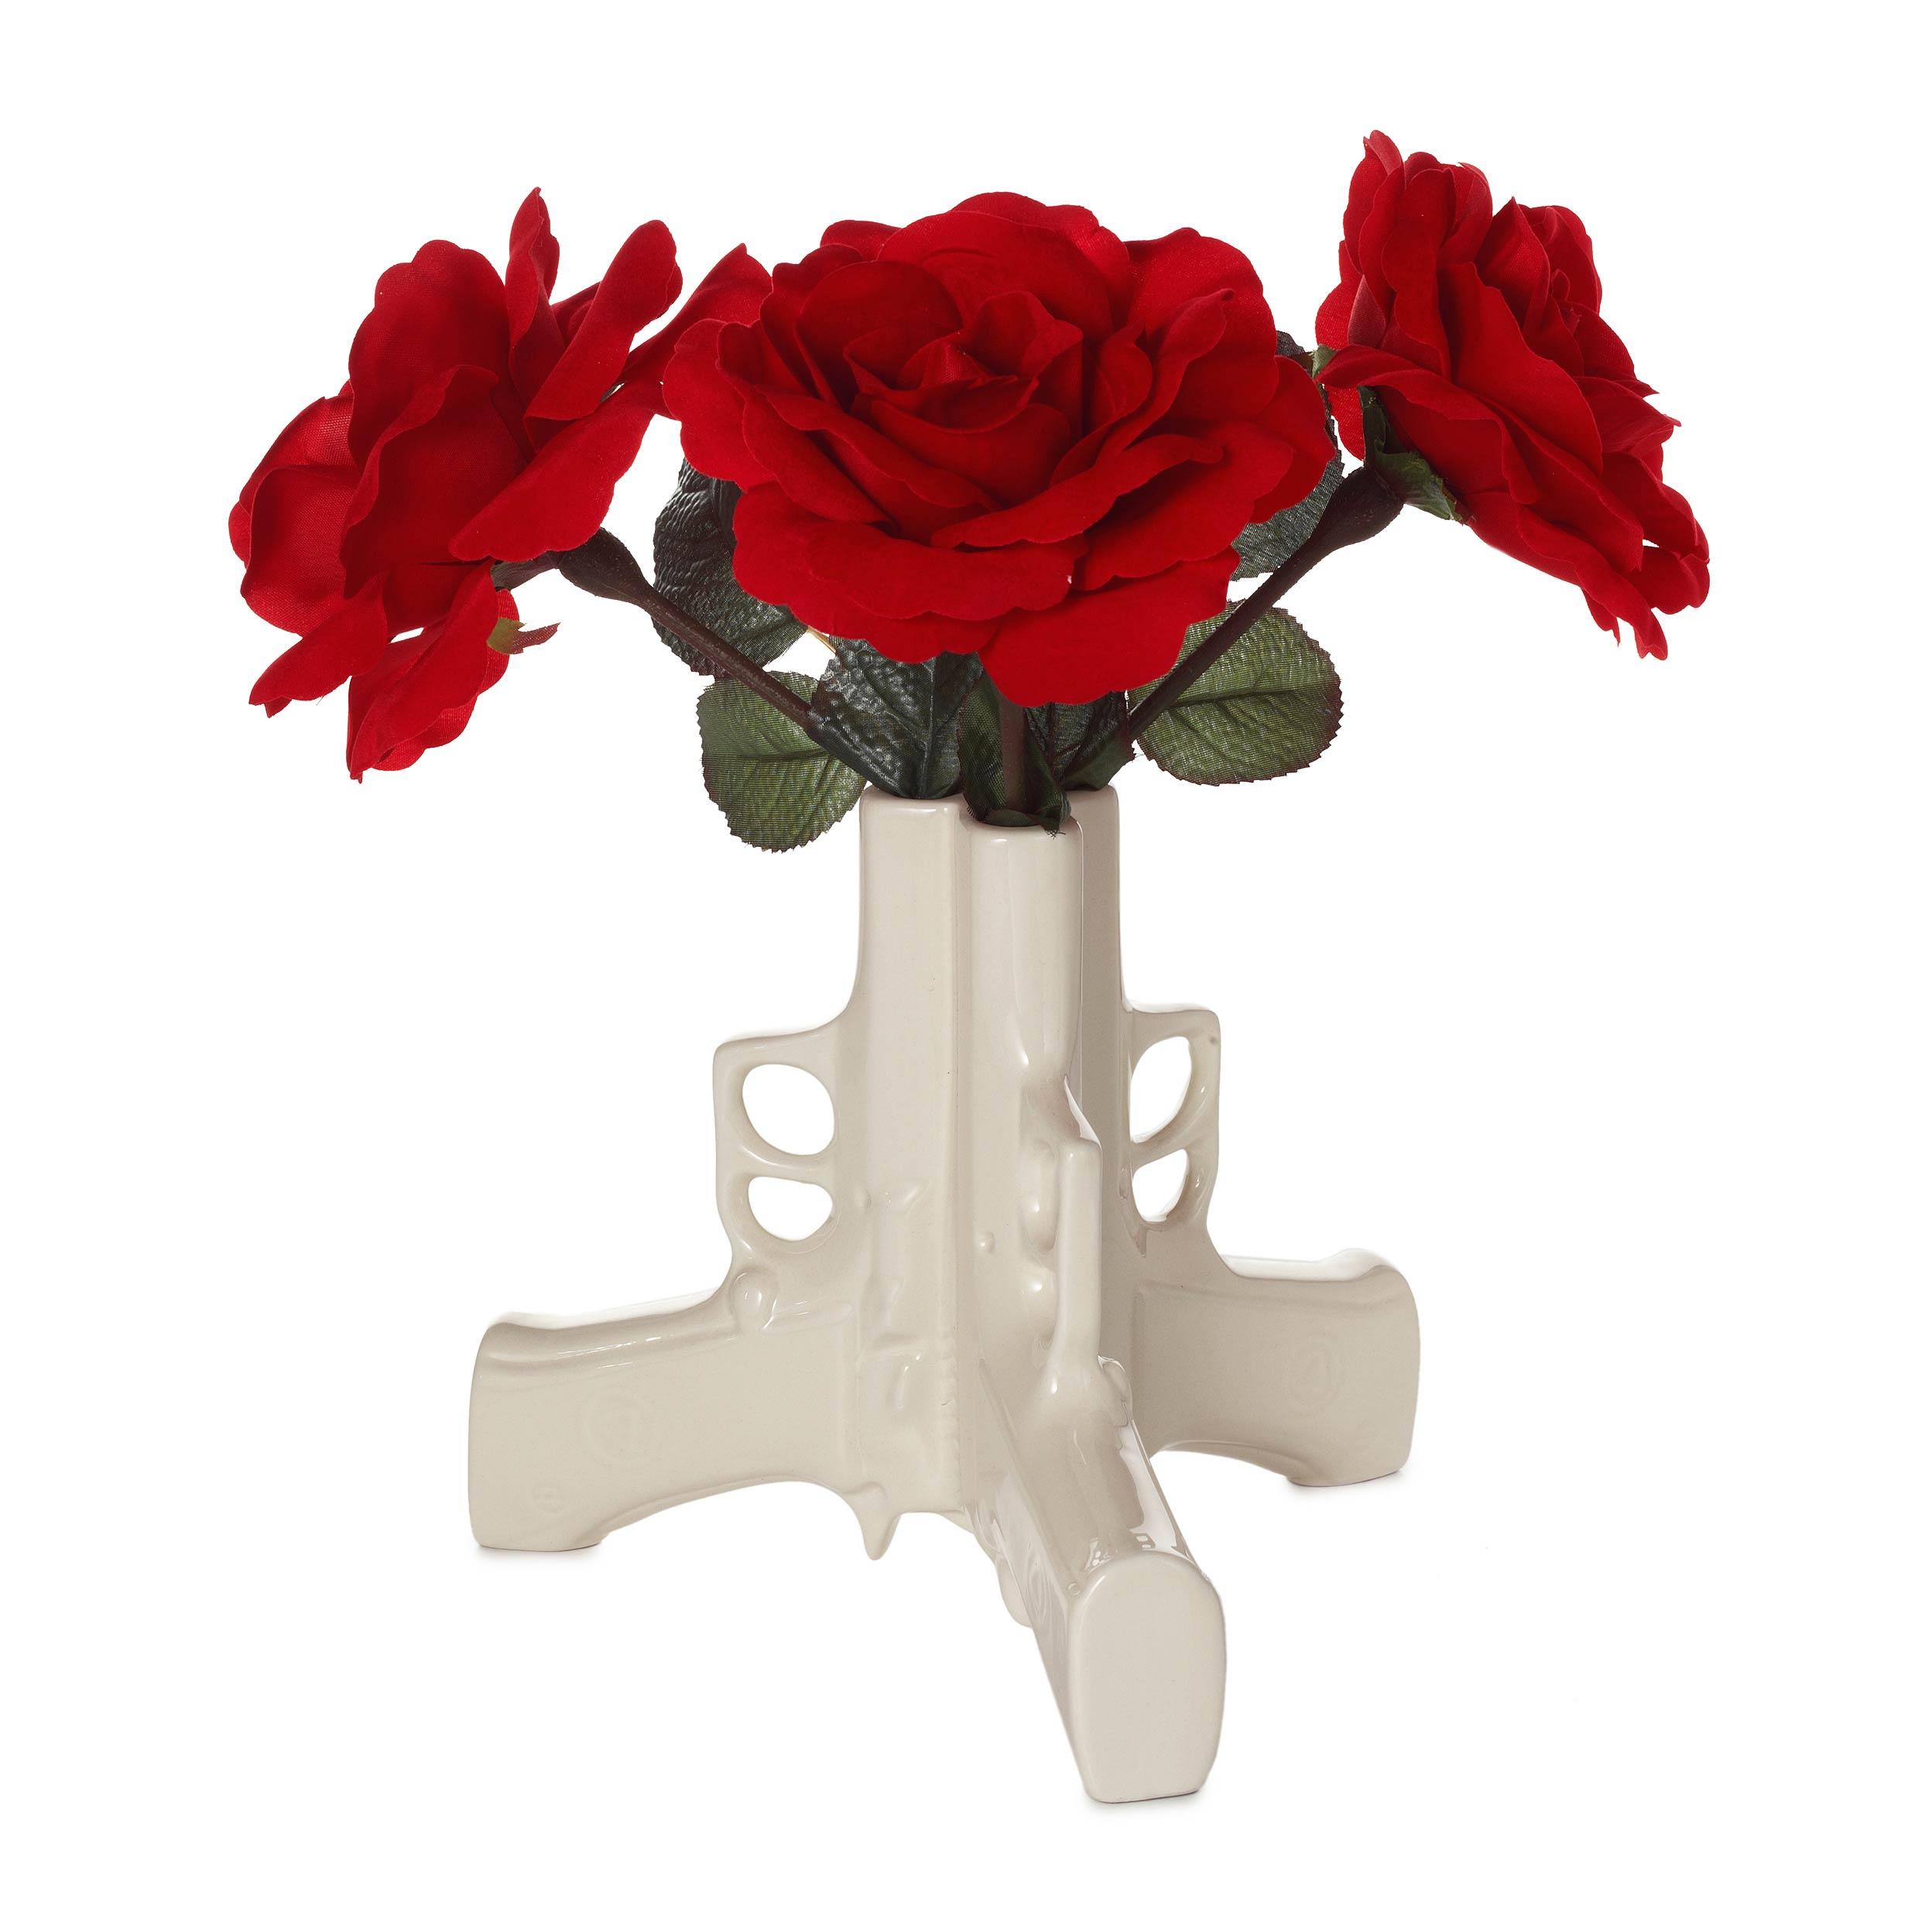 Design Flower Vases gun flower vase ceramic pistol uses weapon to make peaceful 1 thumbnail